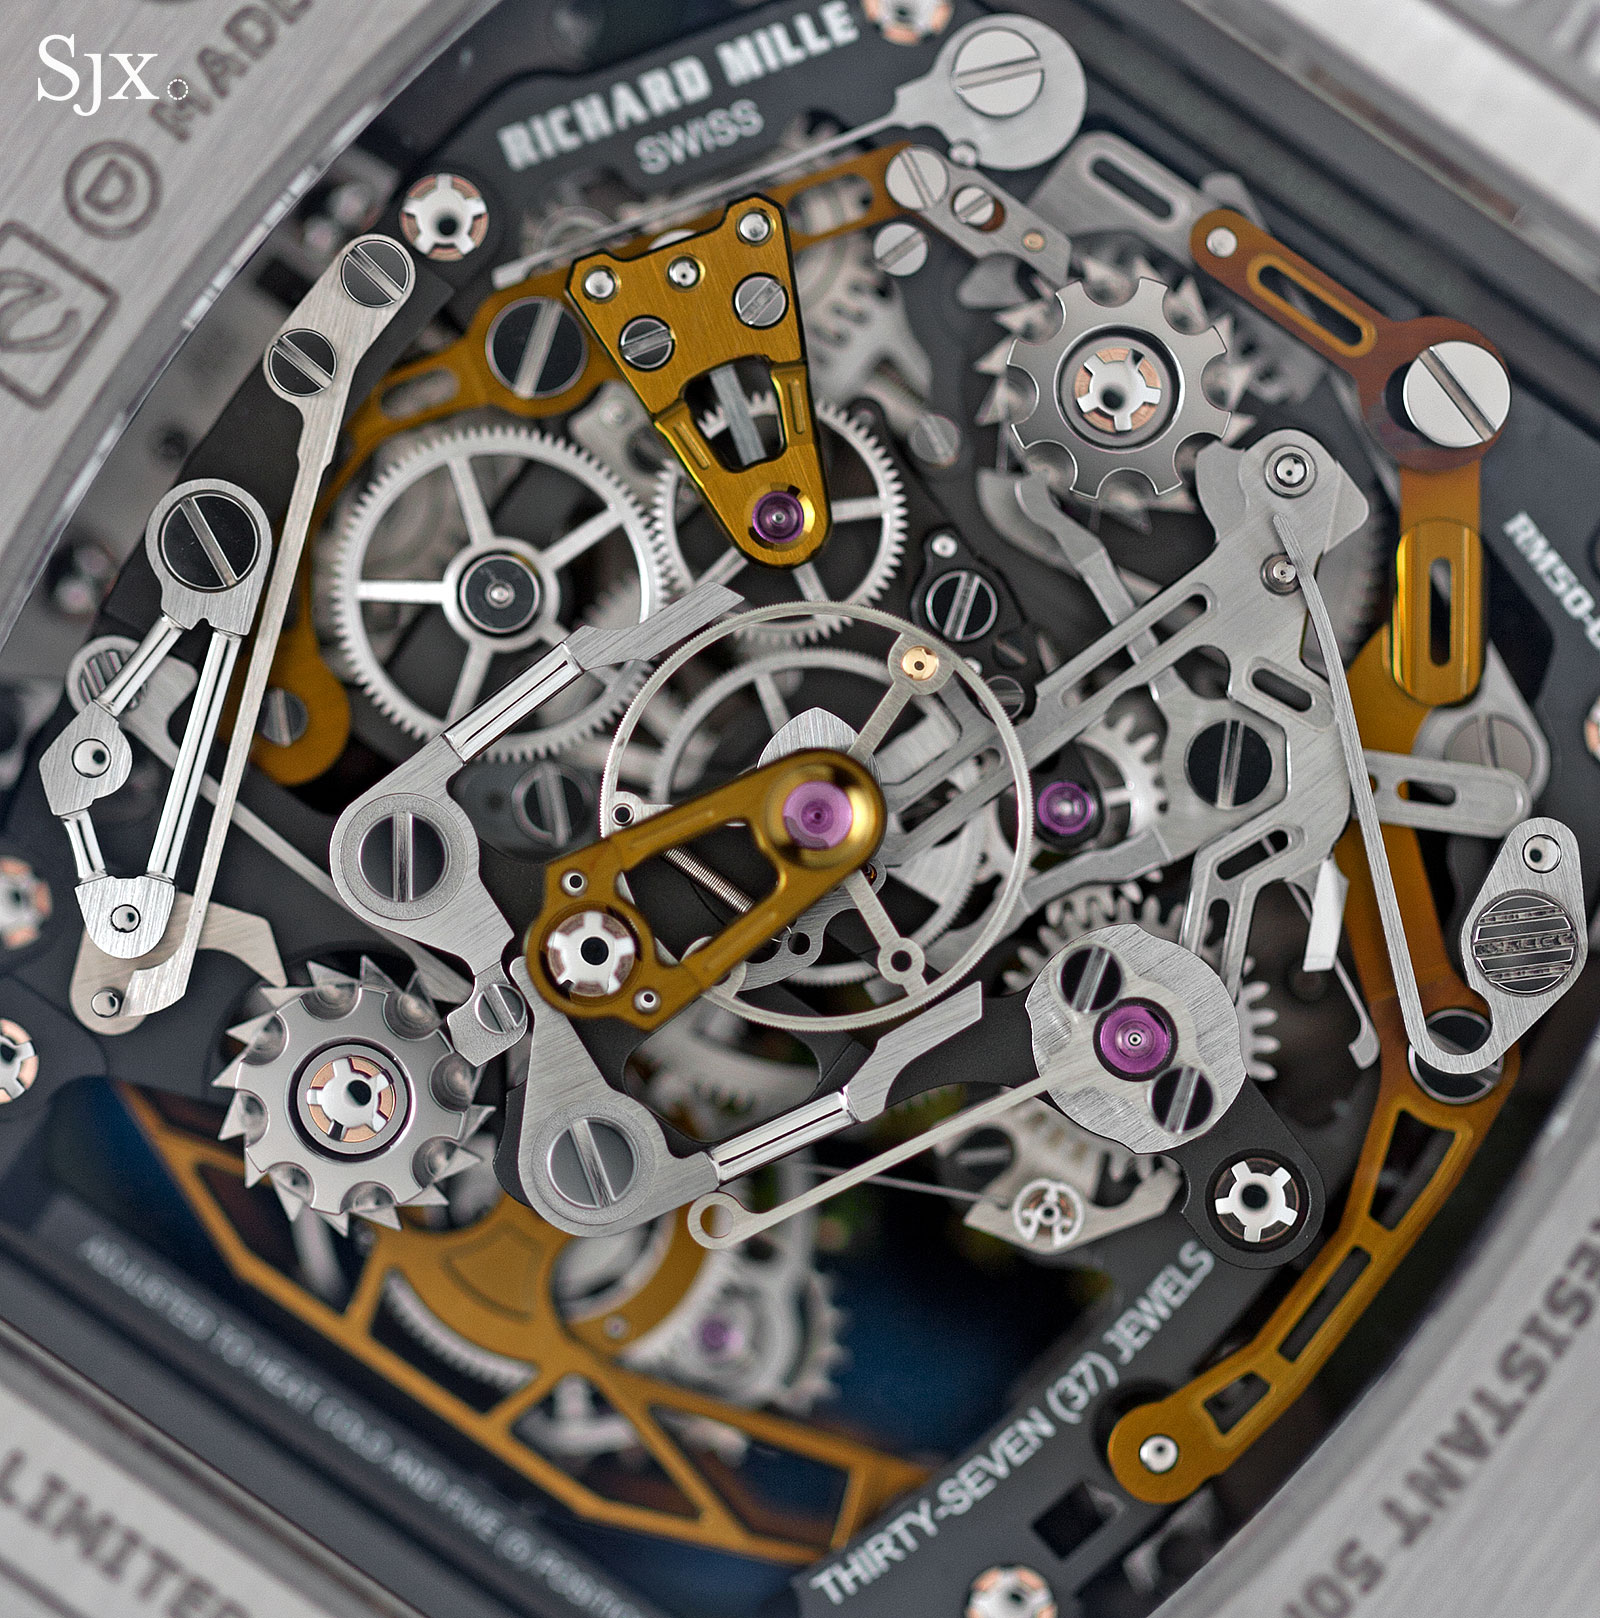 Richard Mille RM 50-02 ACJ Tourbillon Split Seconds Chronograph 15